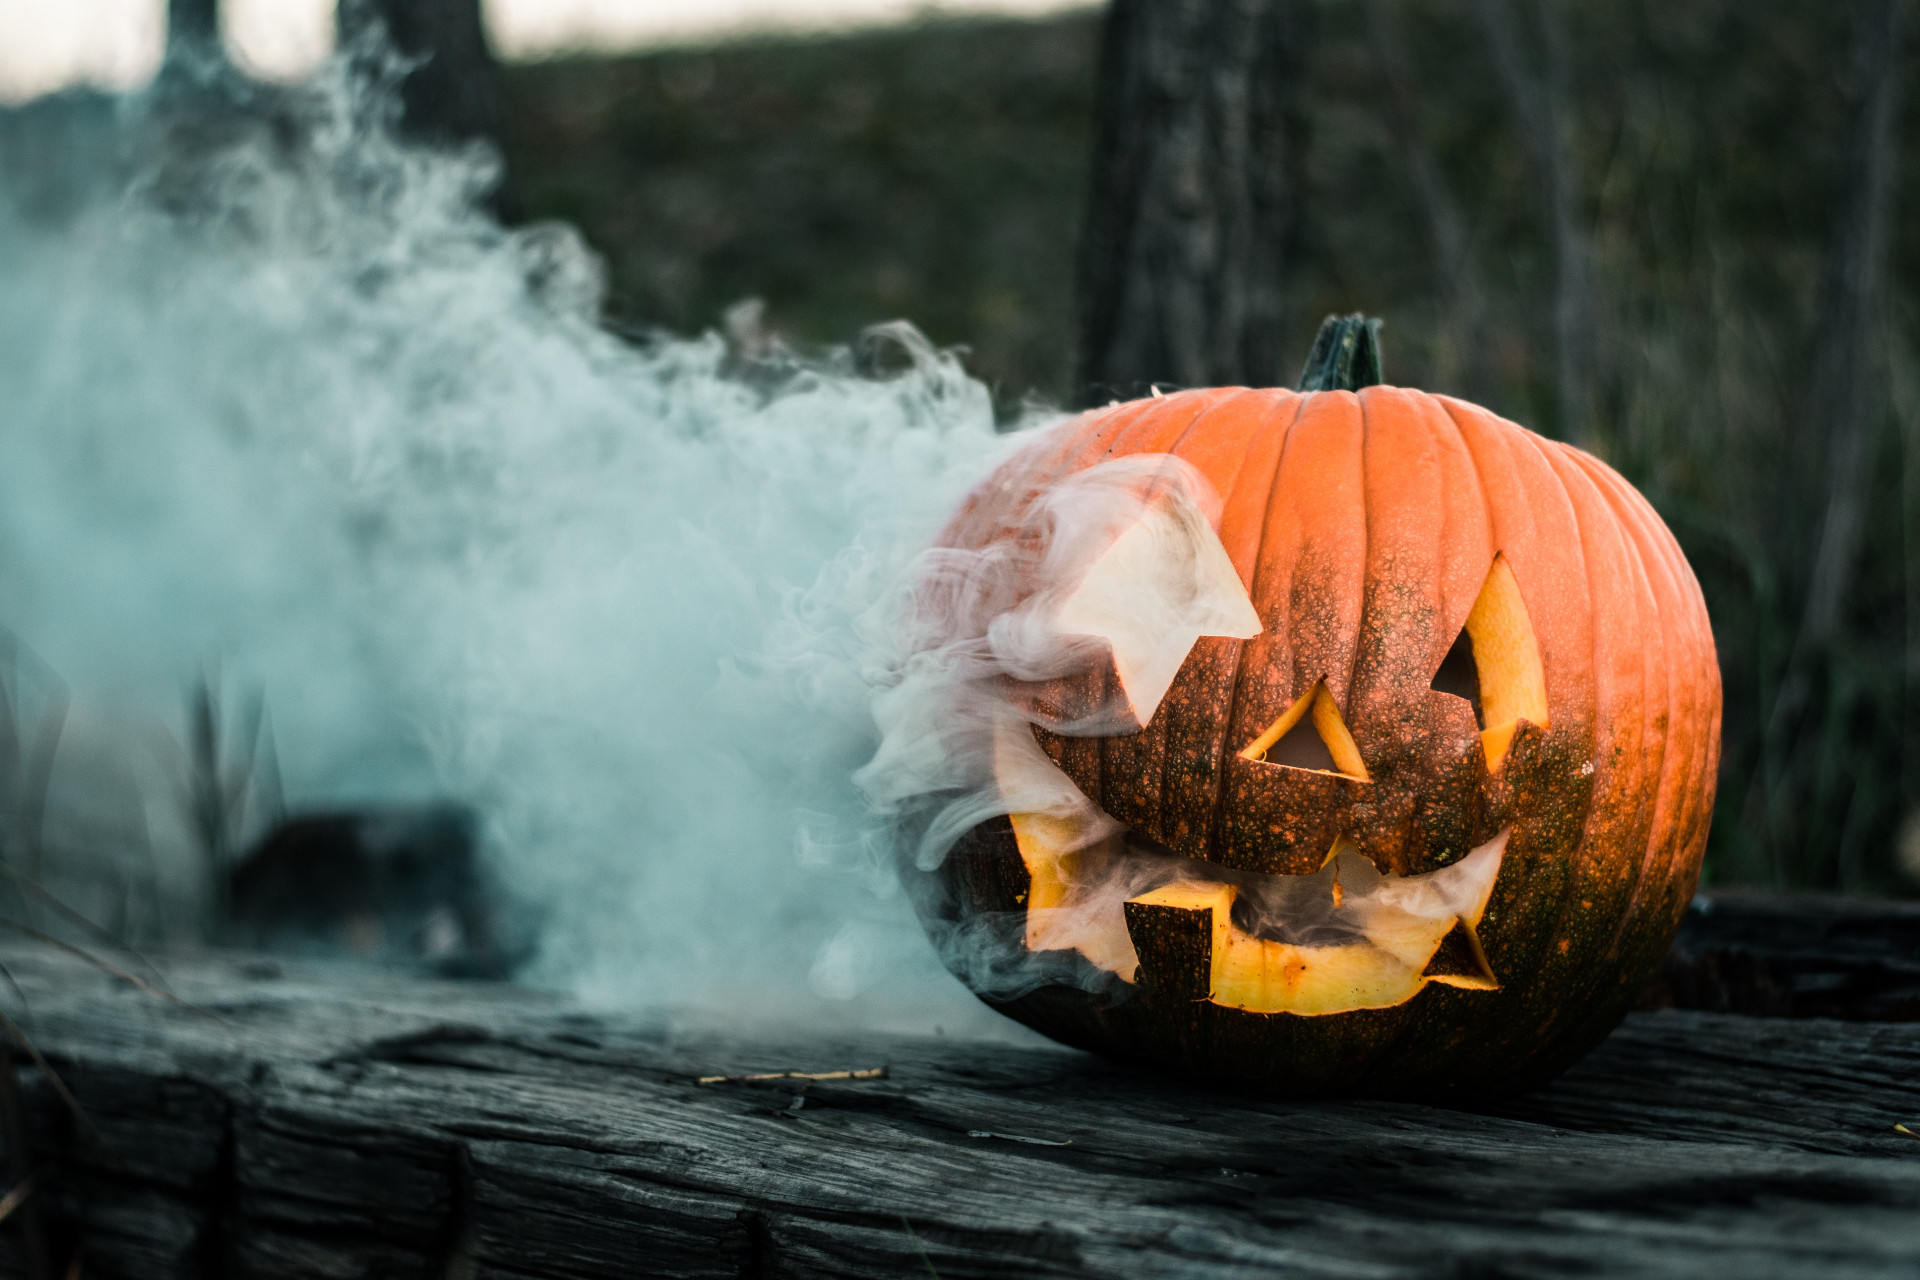 A jacko-lantern with smoke billowing out of the side